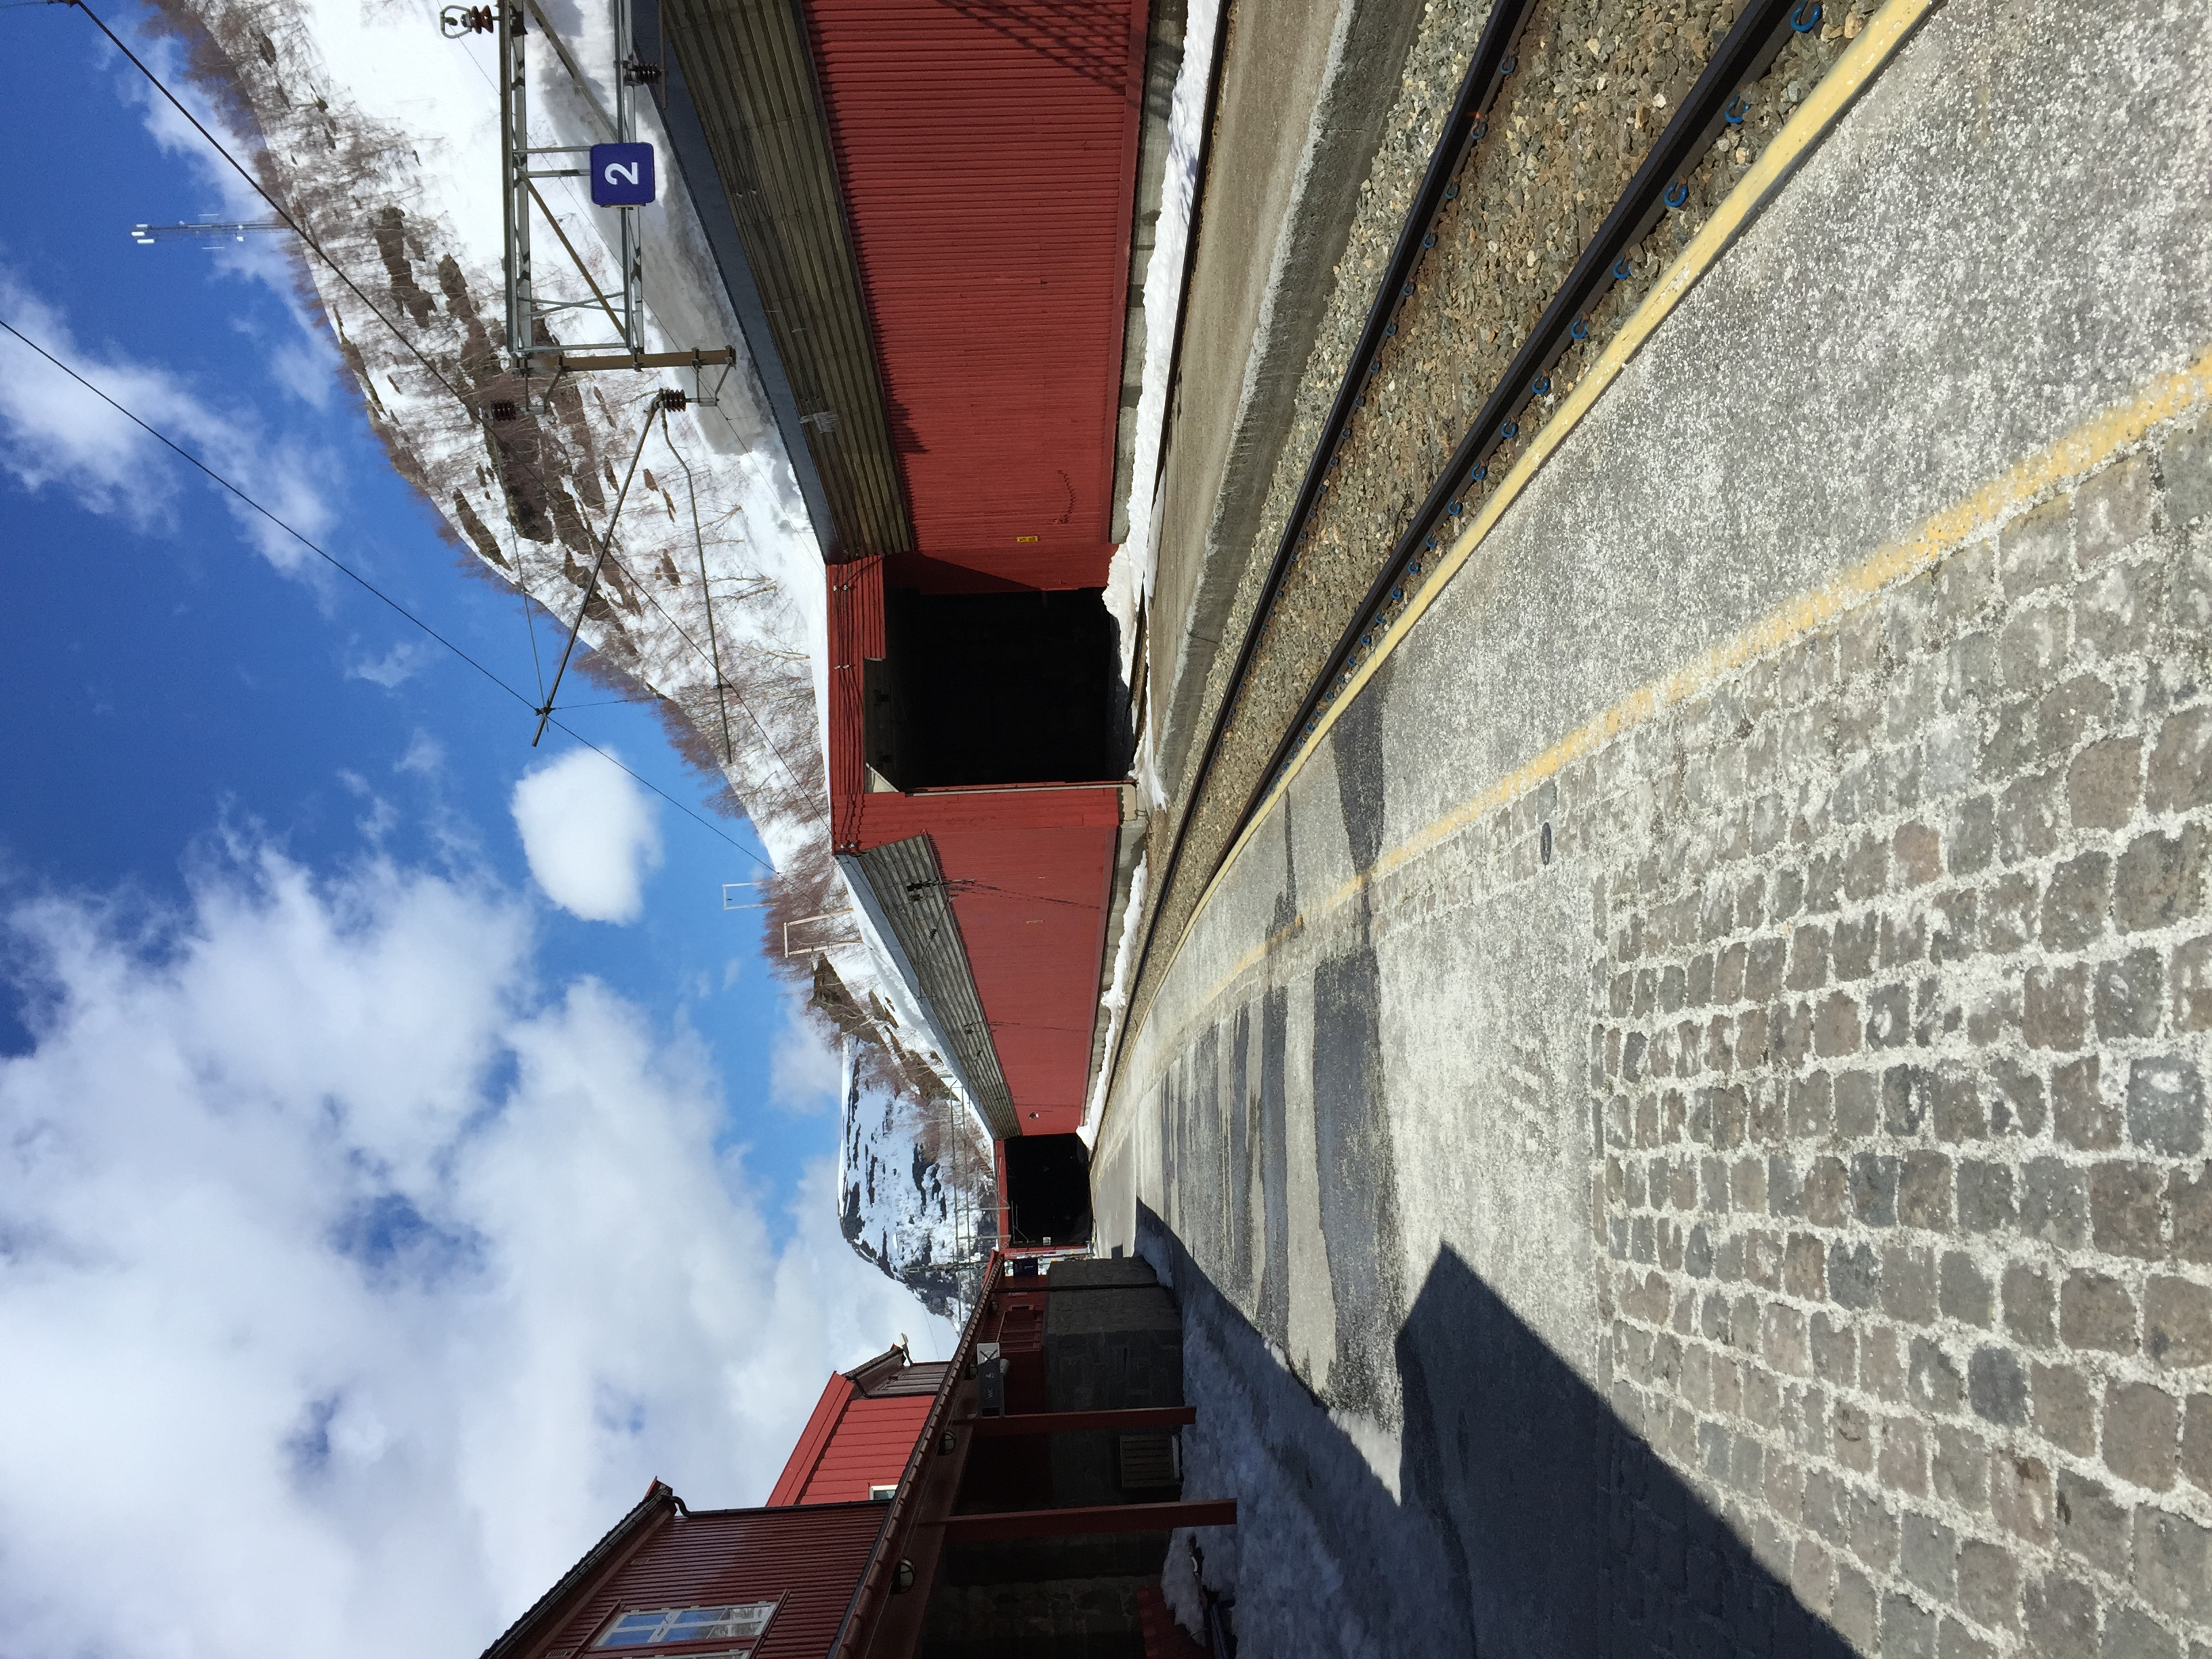 Back in Myrdaal, waiting for the train to Oslo.